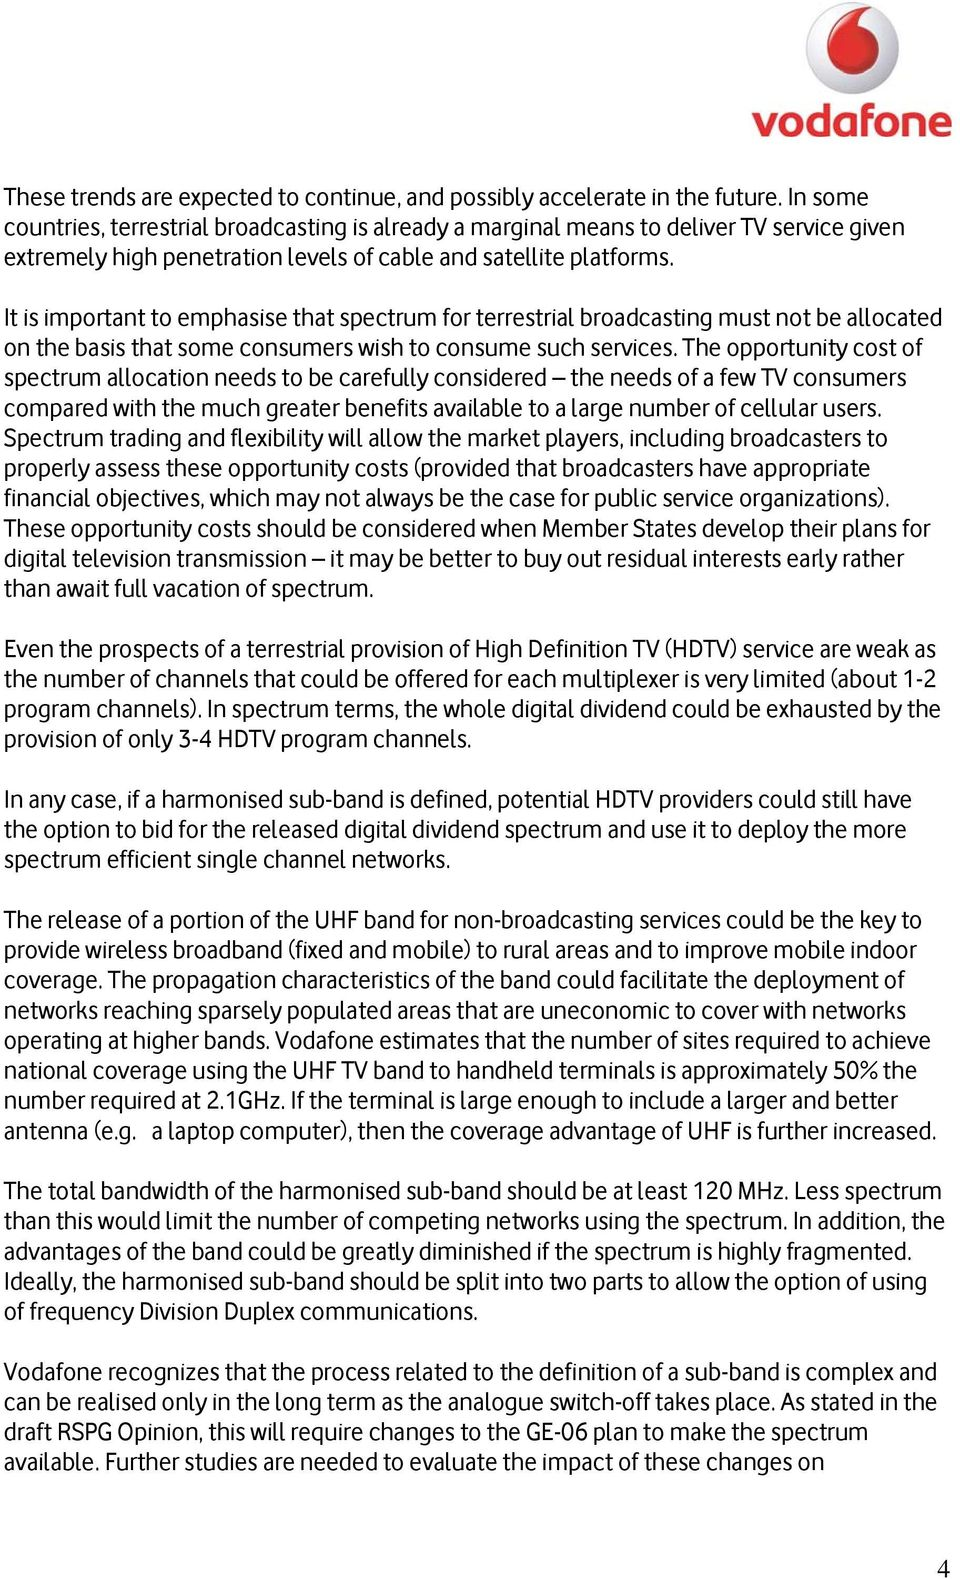 It is important to emphasise that spectrum for terrestrial broadcasting must not be allocated on the basis that some consumers wish to consume such services.